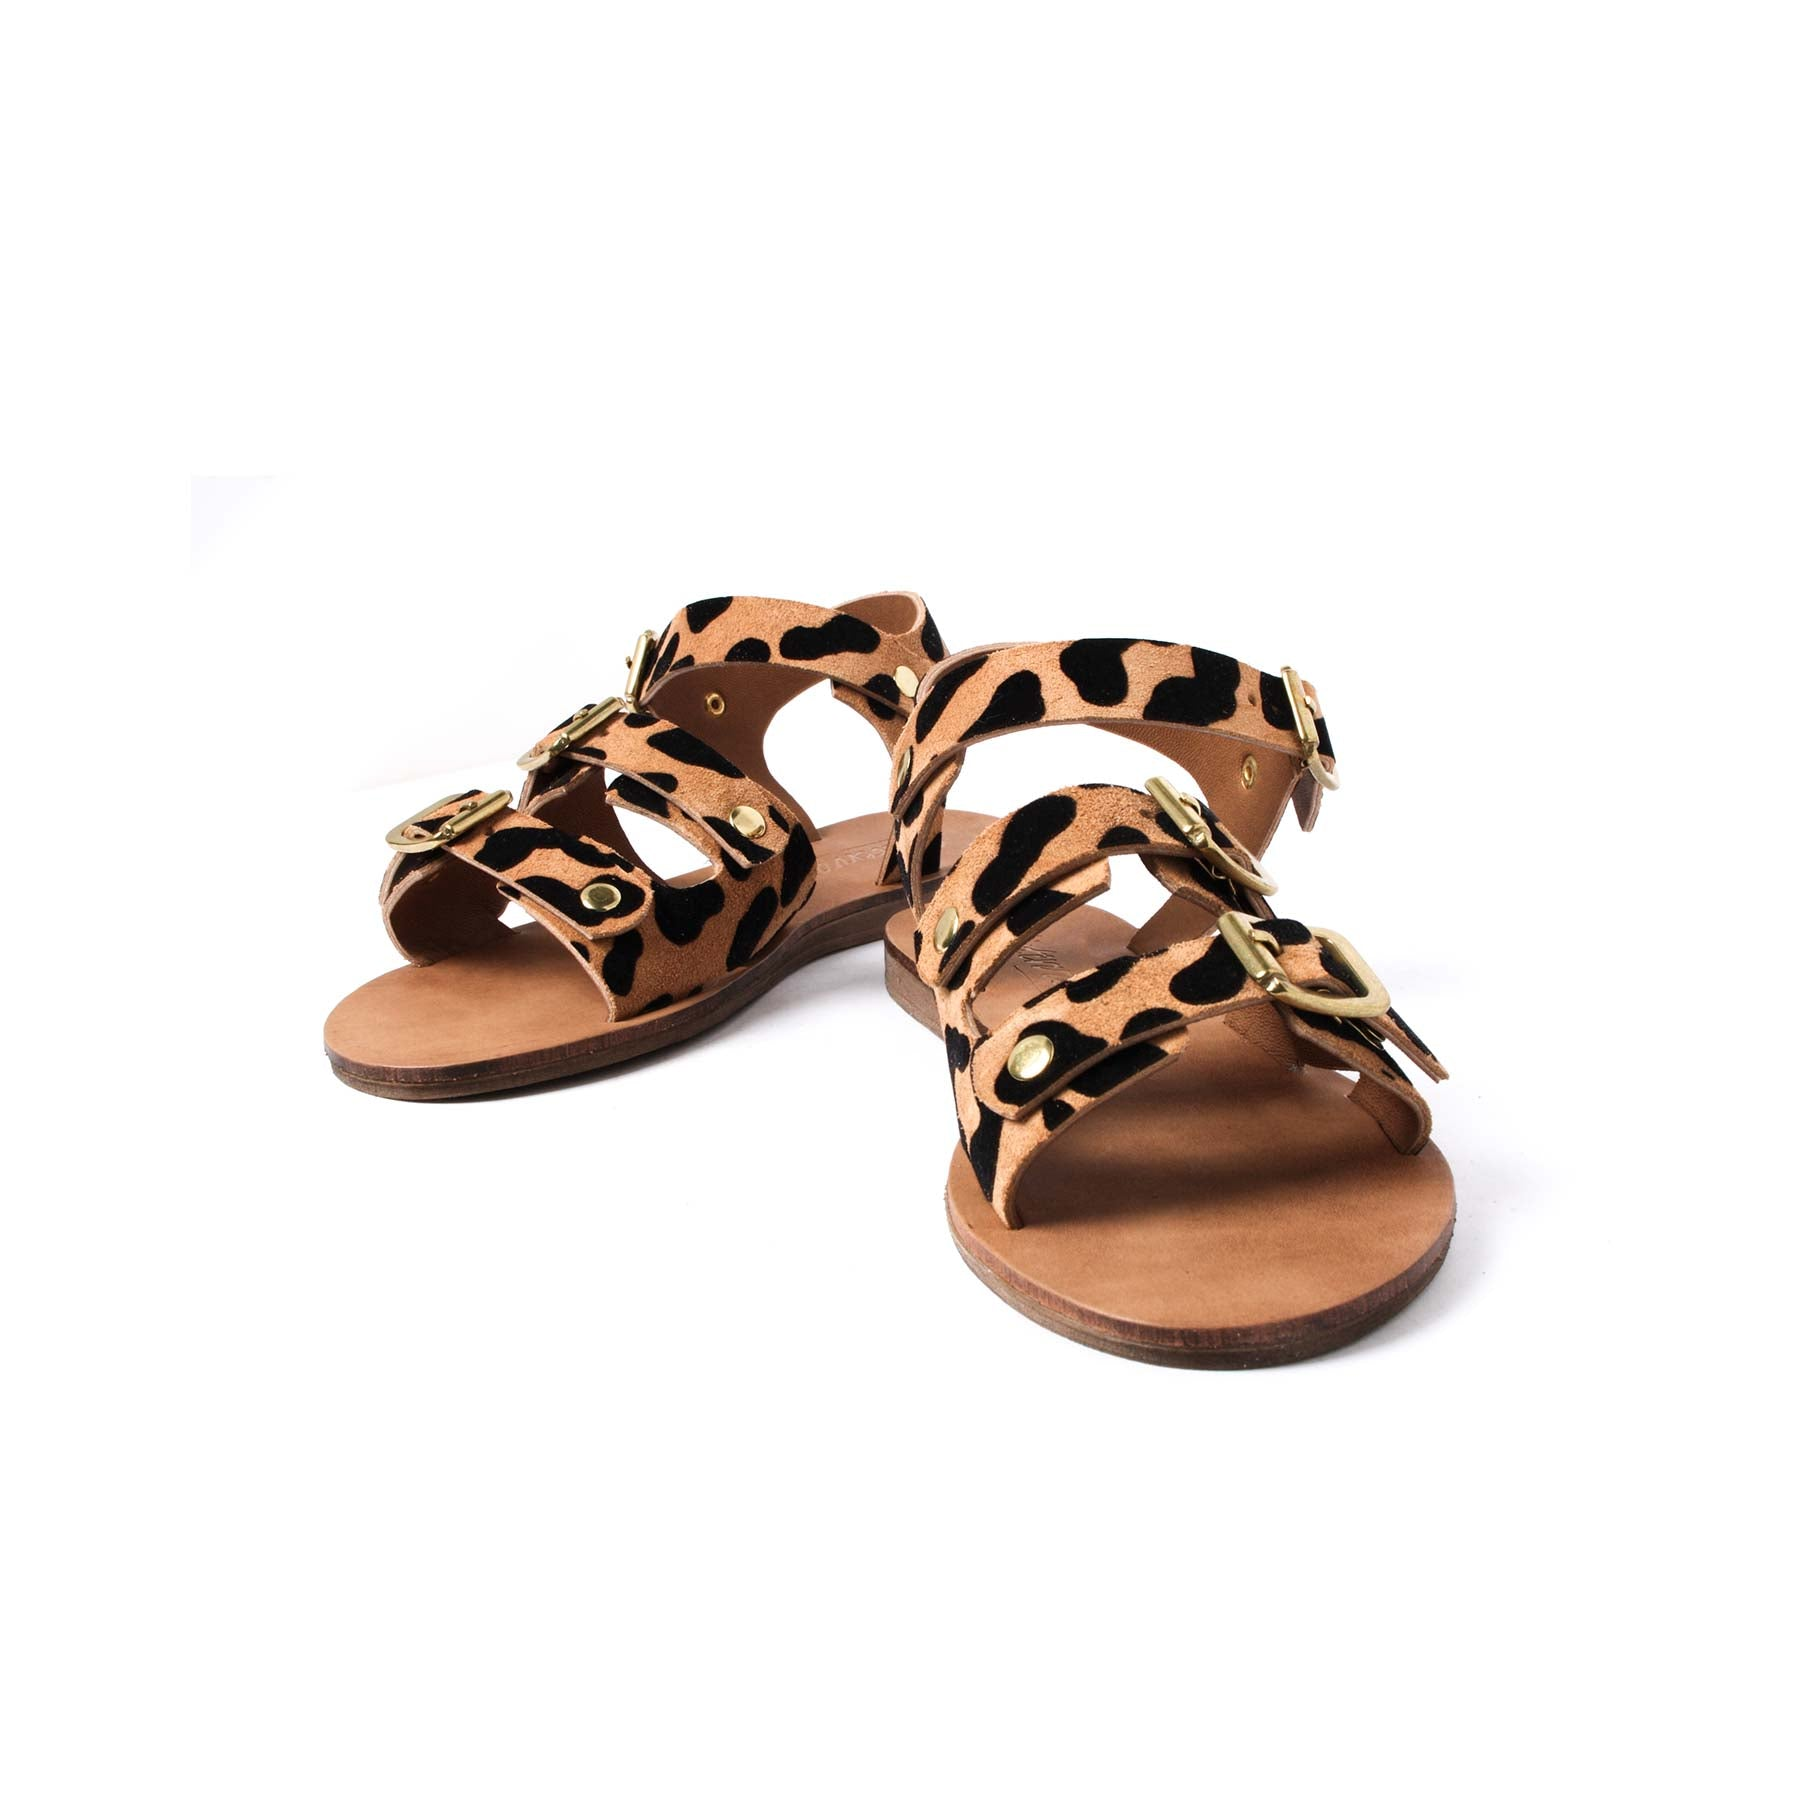 Sandals, Elizabeth Leopard Suede - Lintervalle shoes for woman